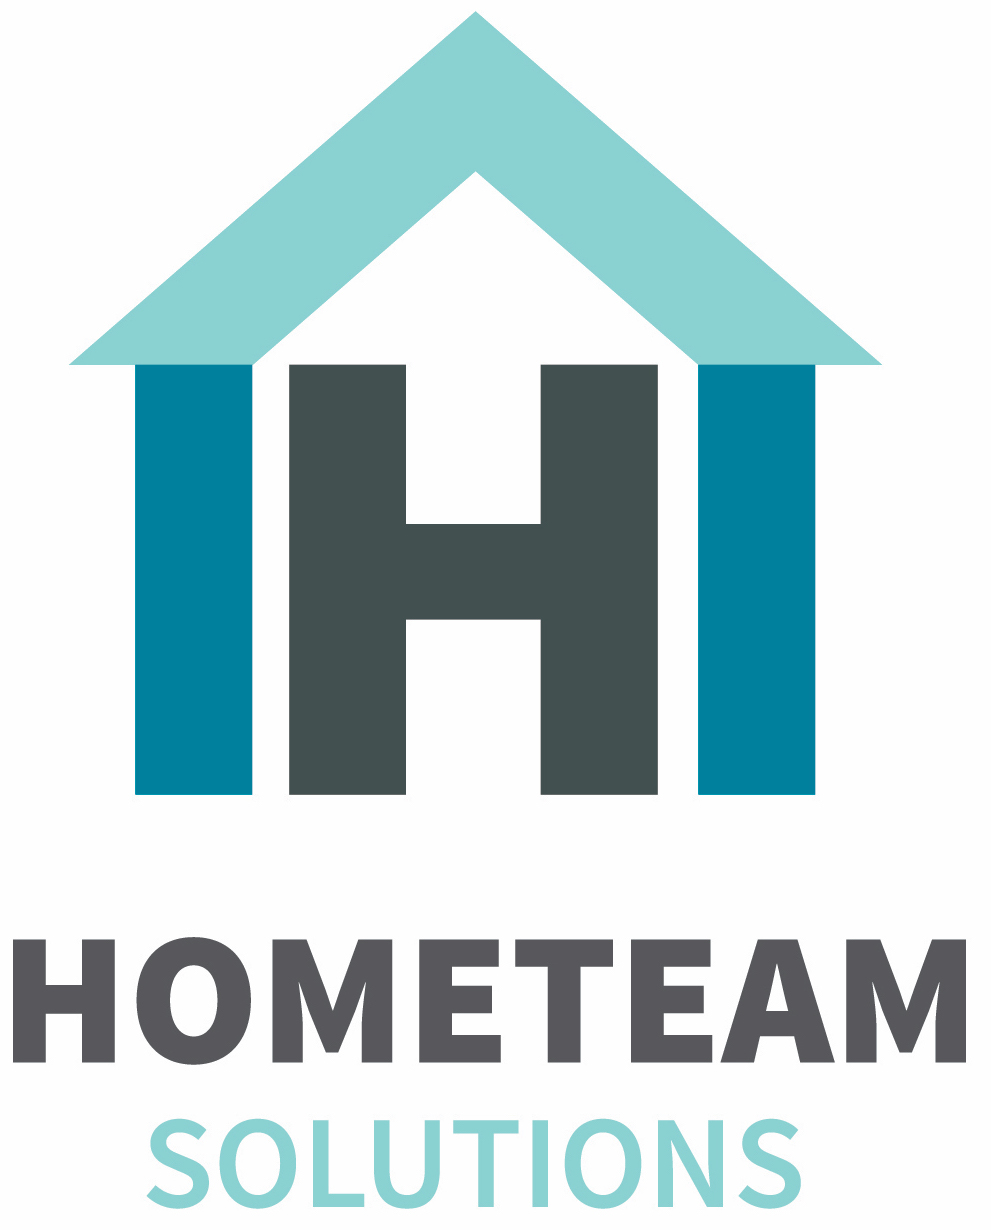 Hometeam Solutions logo